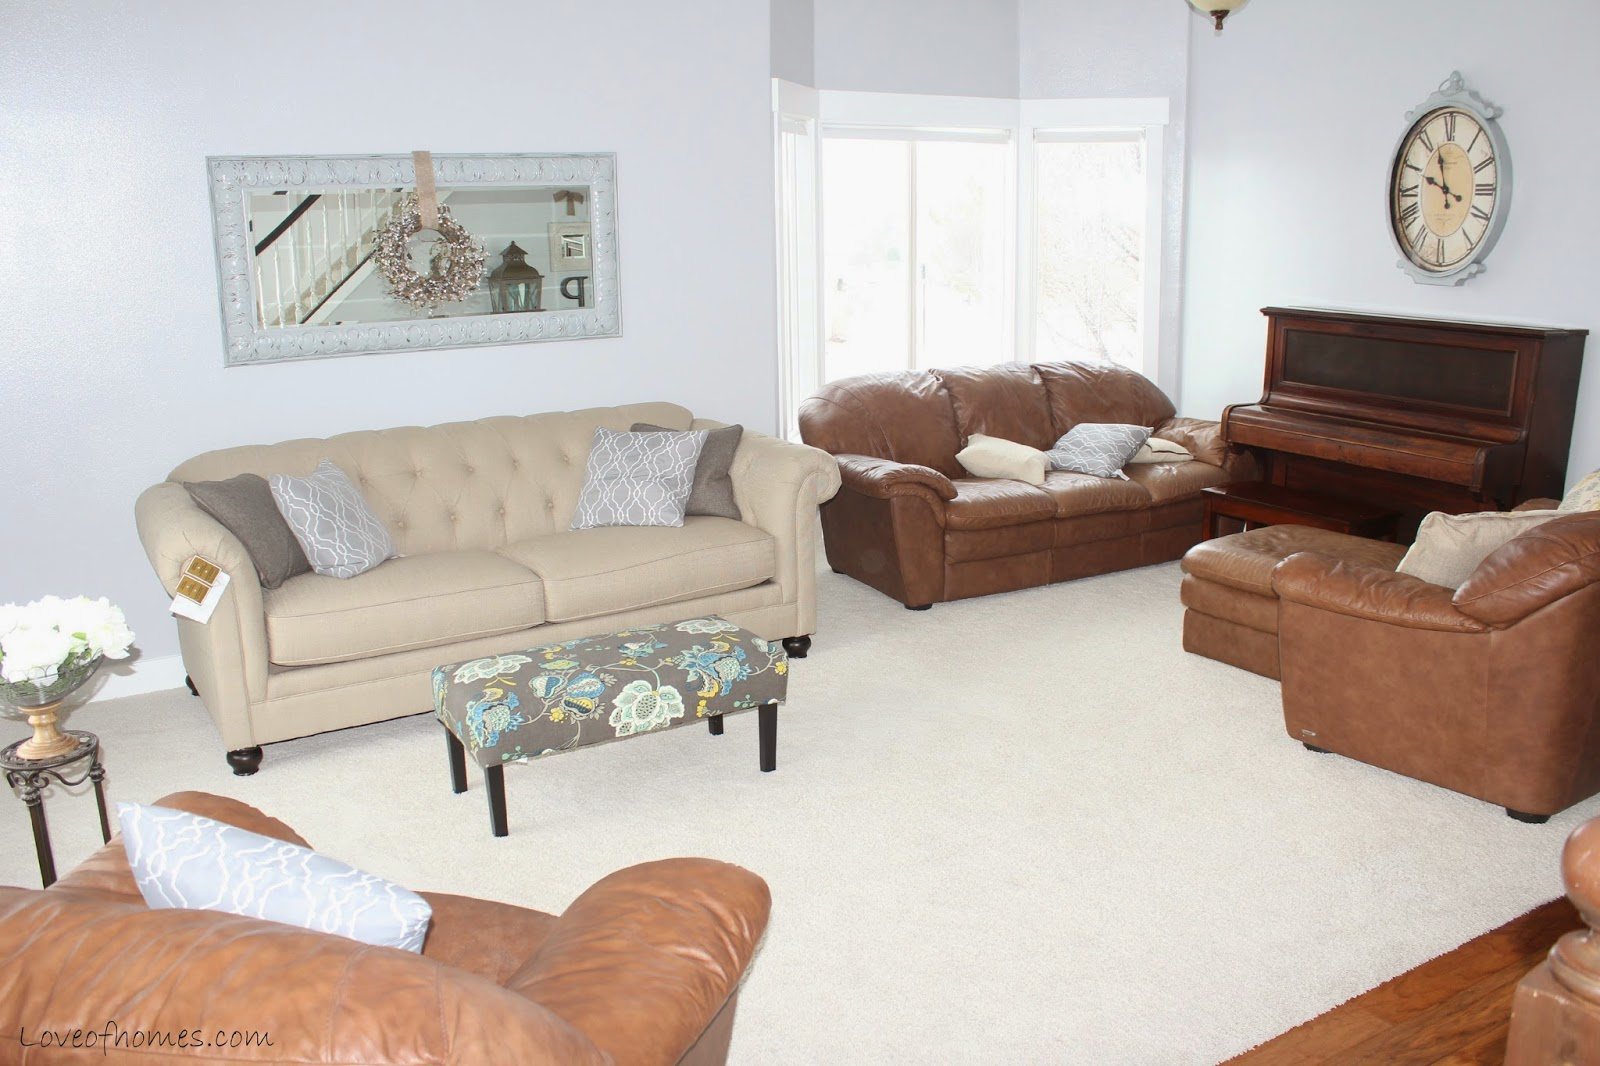 Love Of Homes Rearranging Furniture